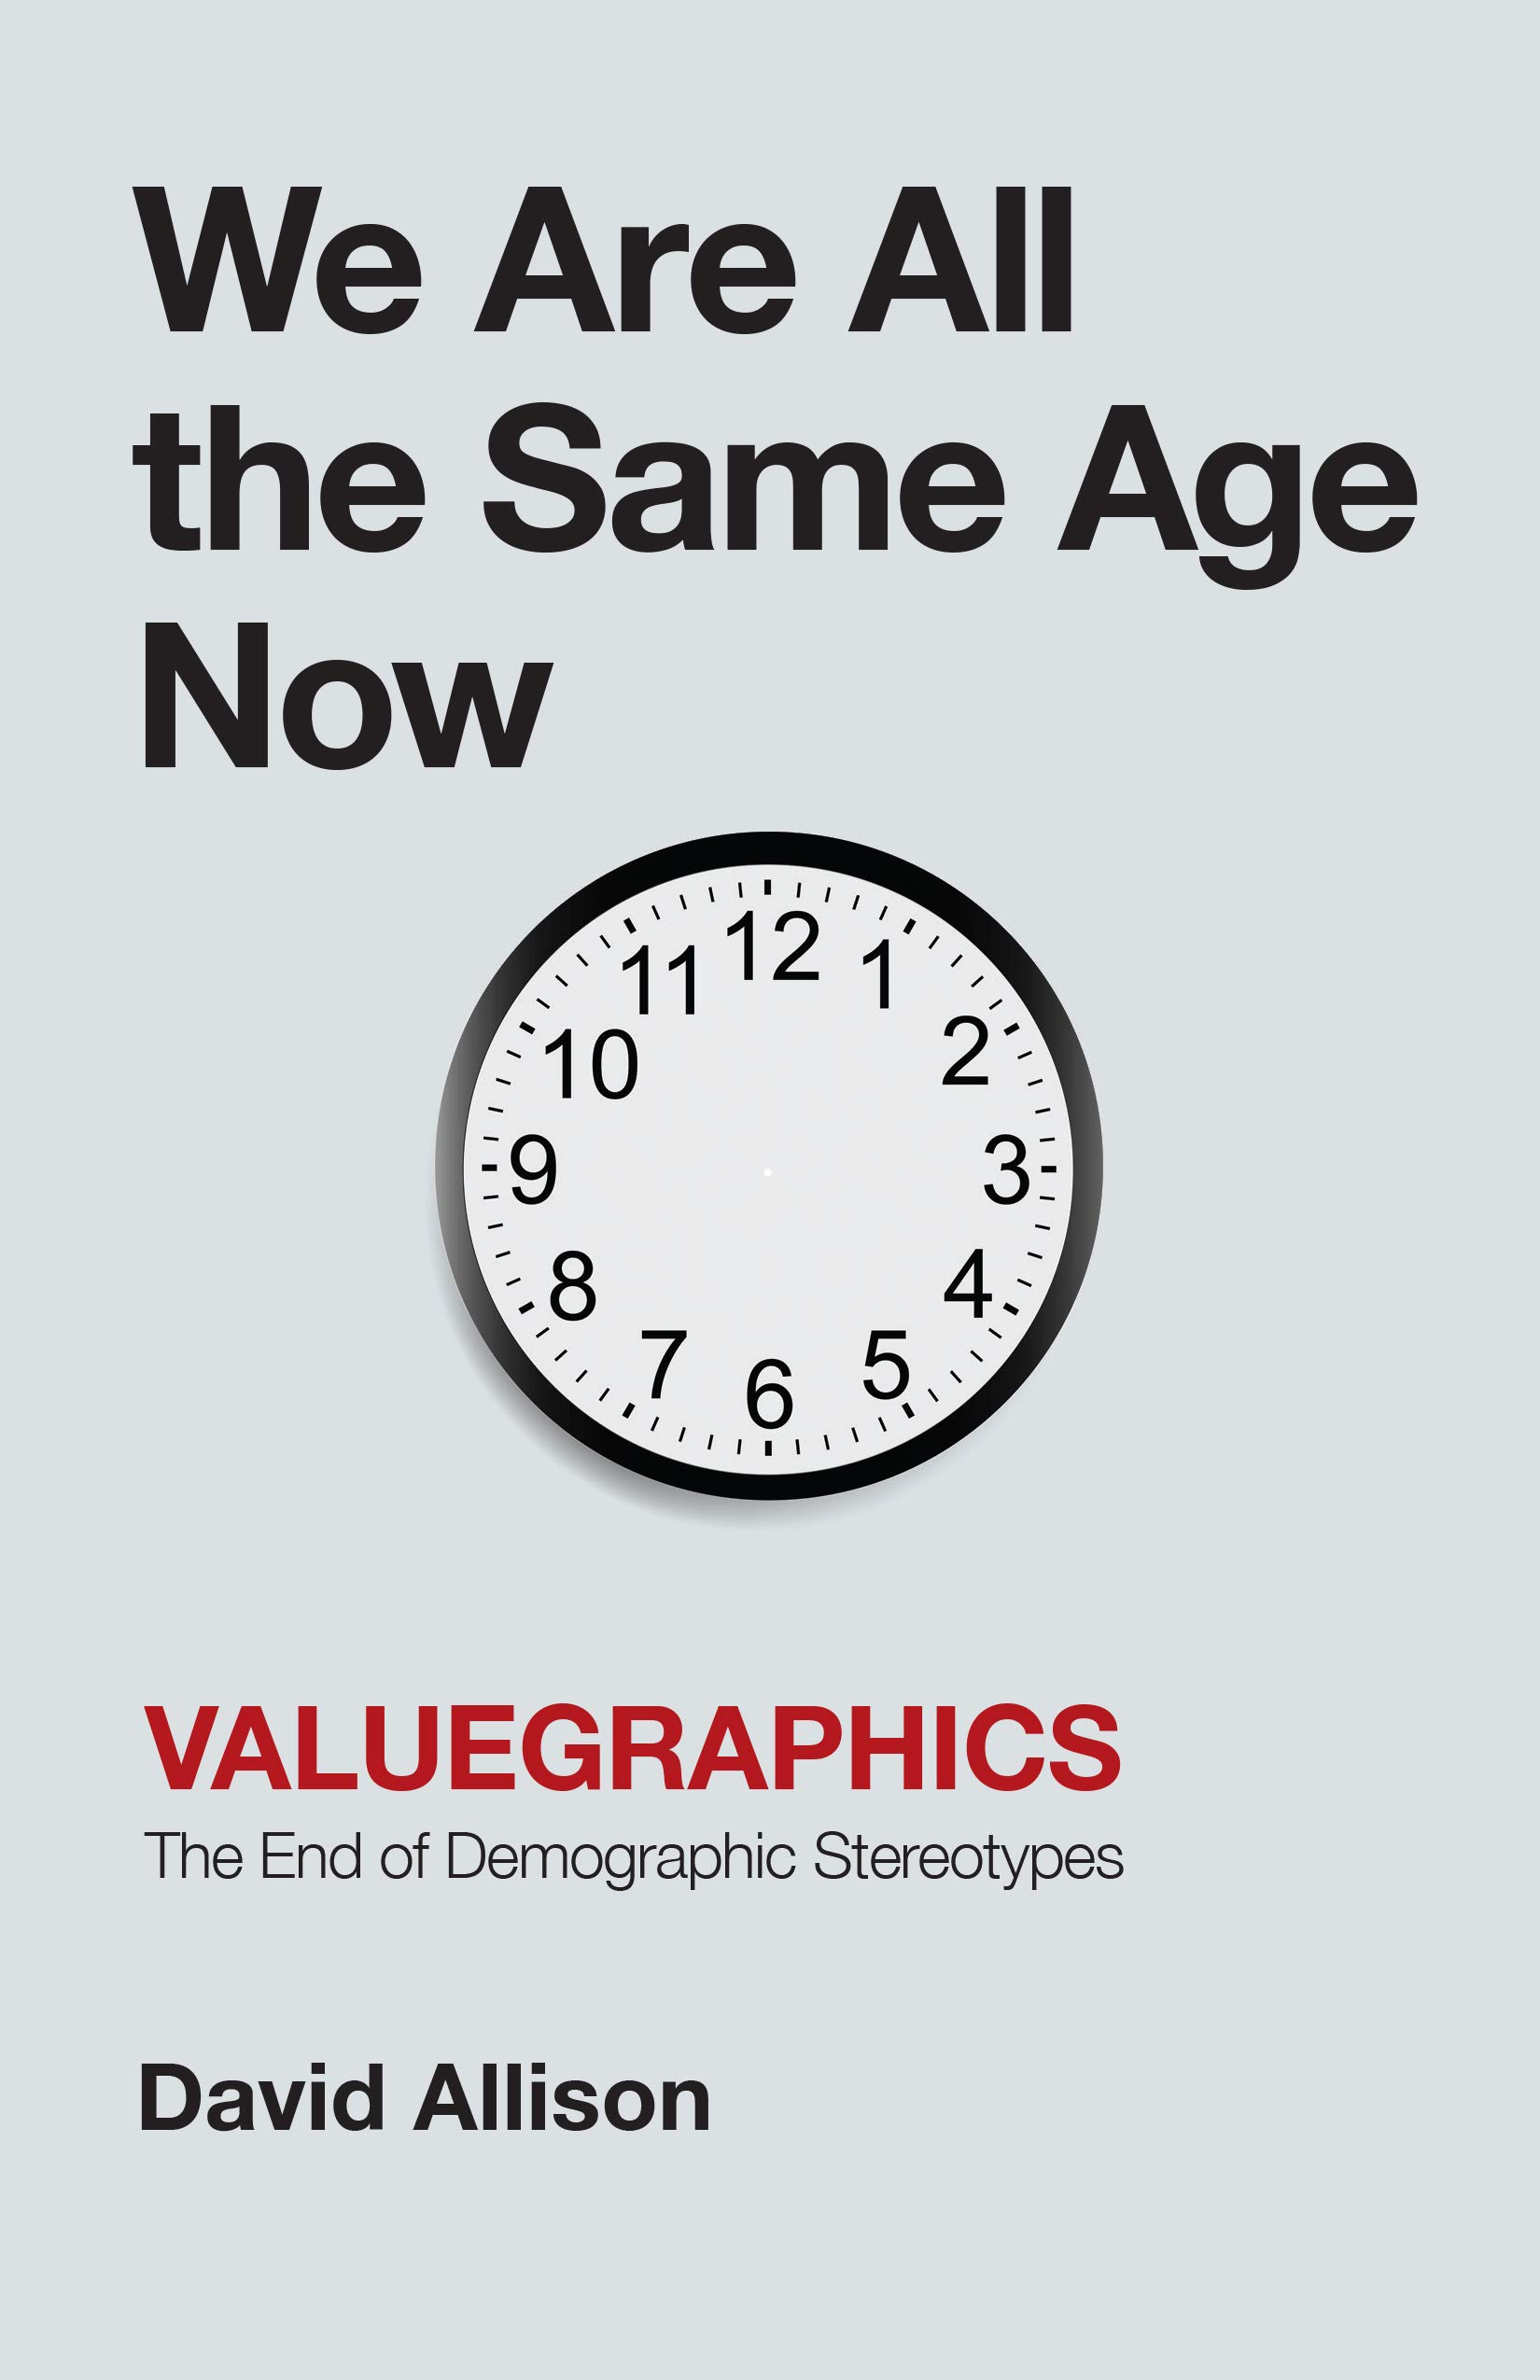 We Are All the Same Age Now: Valuegraphics, The End of Demographic Stereotypes